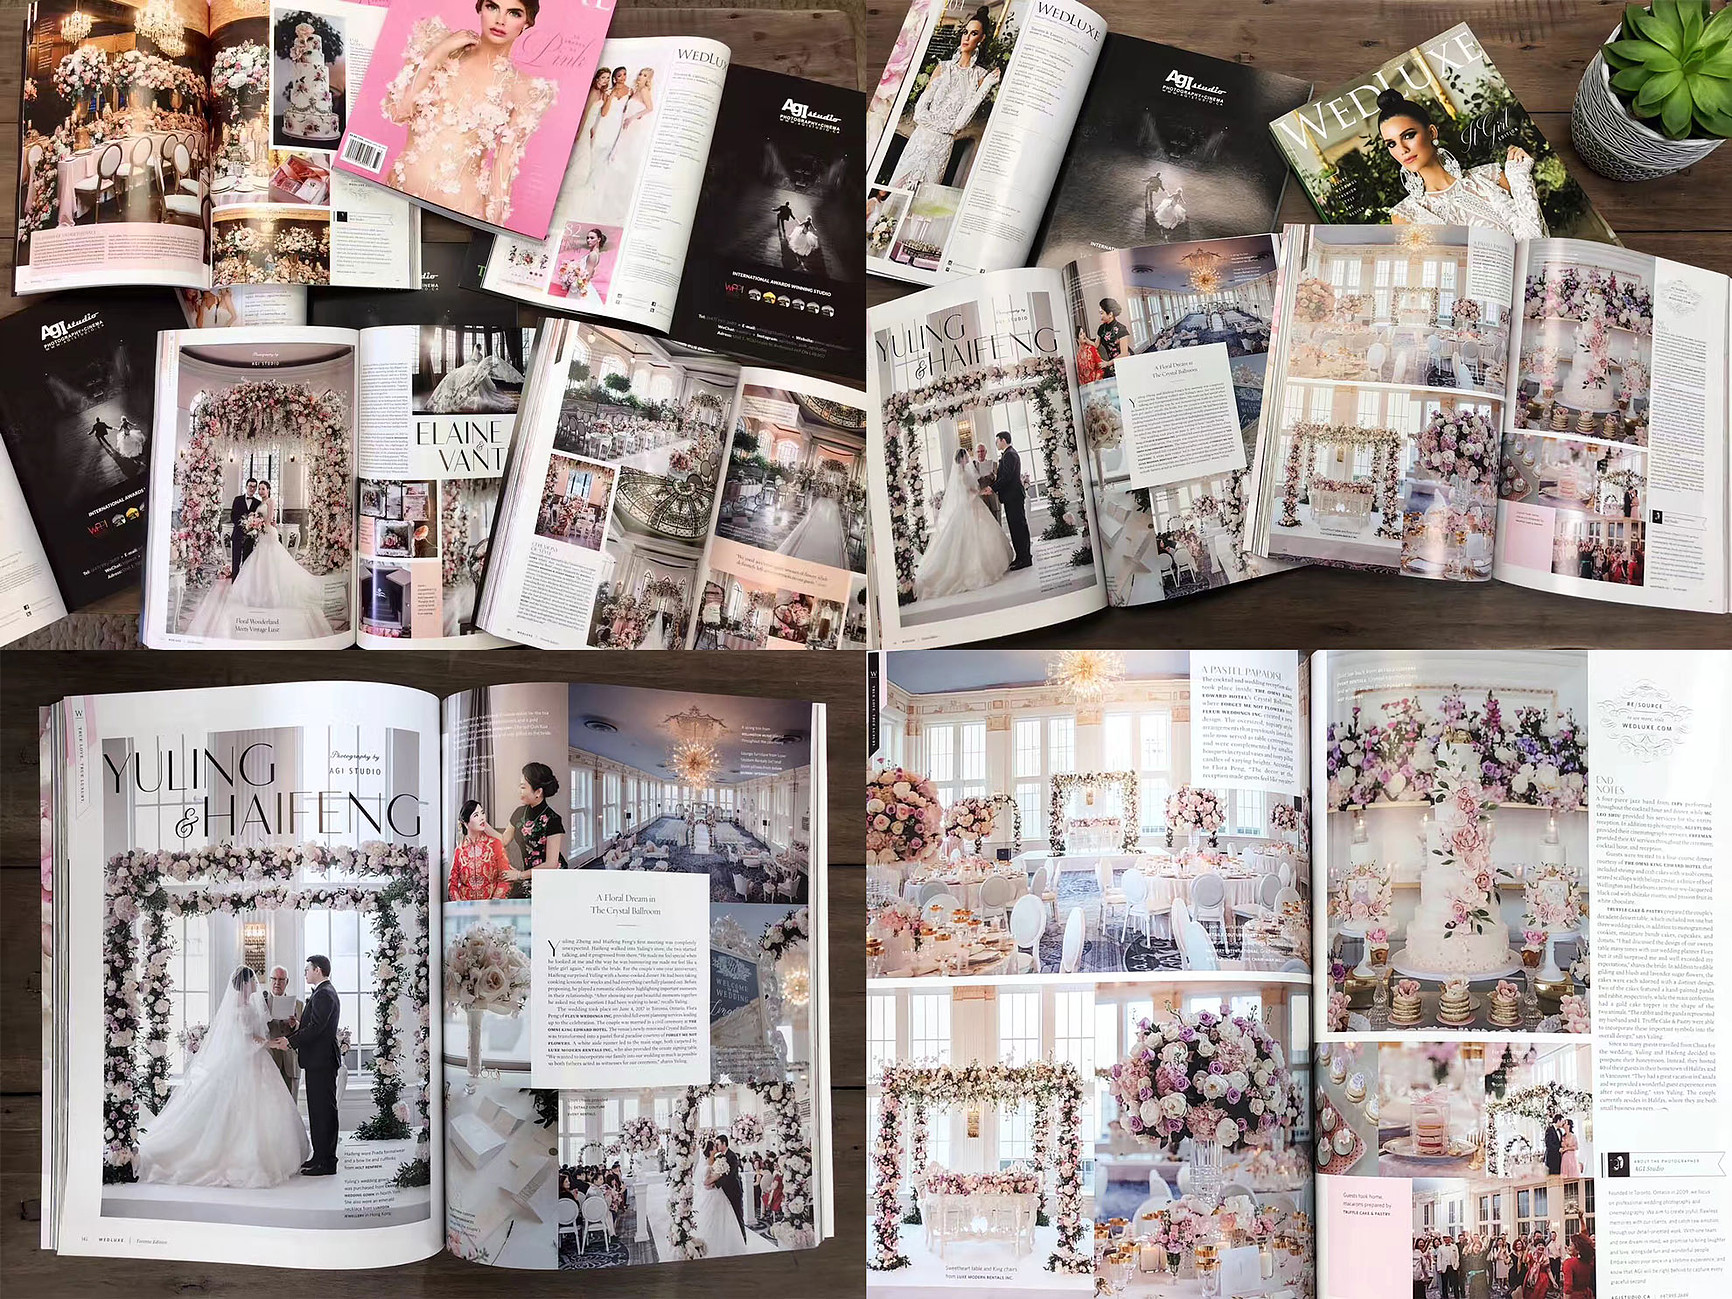 Agi studio wedluxe special the definition of fairy tail weddings the wedluxe editorial is a by invitation collection that is produced on a bi annual basis through the review of professionals and industry leaders stopboris Gallery